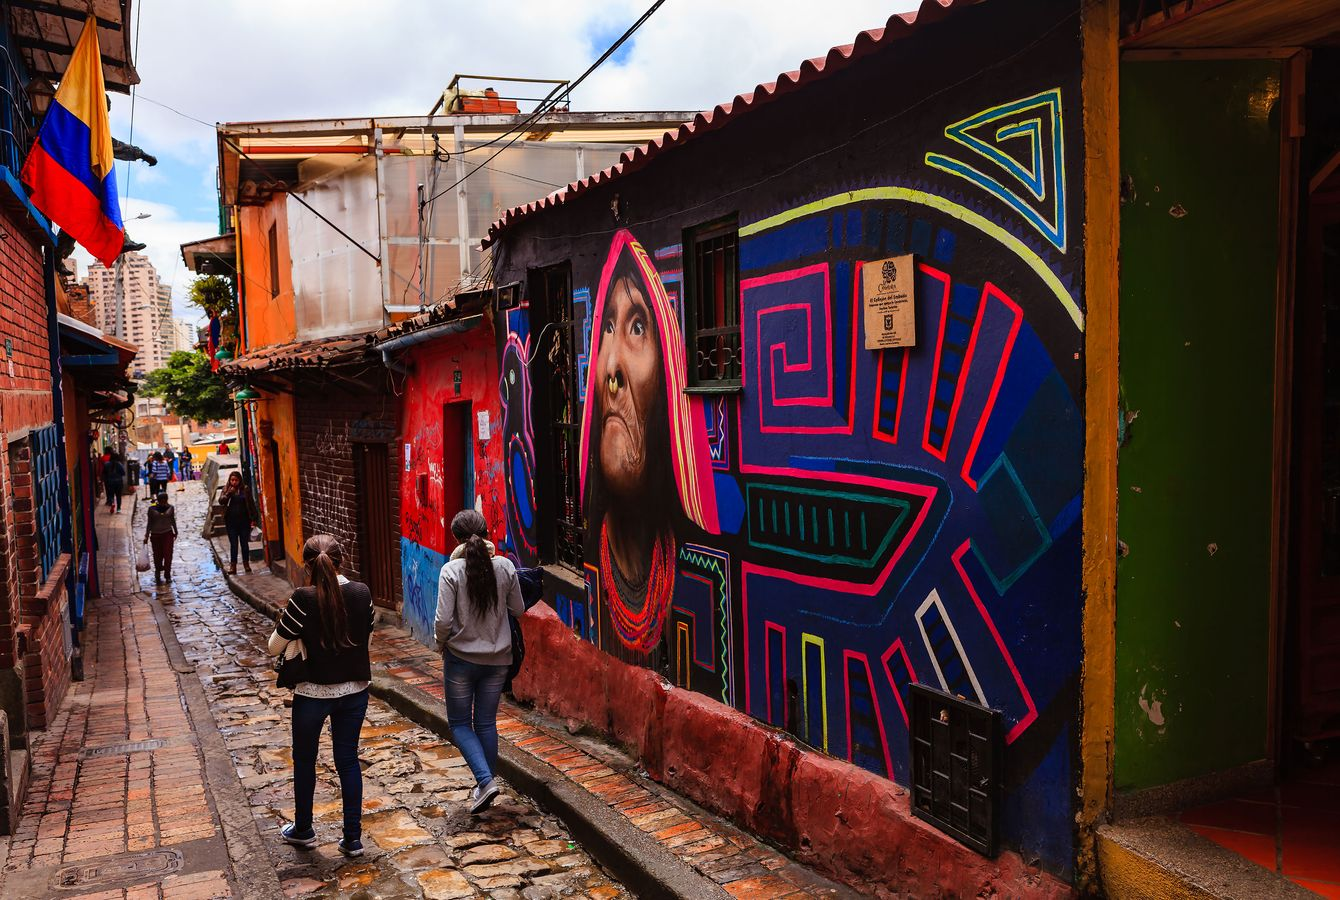 The Ultimate Street Art Guide to Bogotá